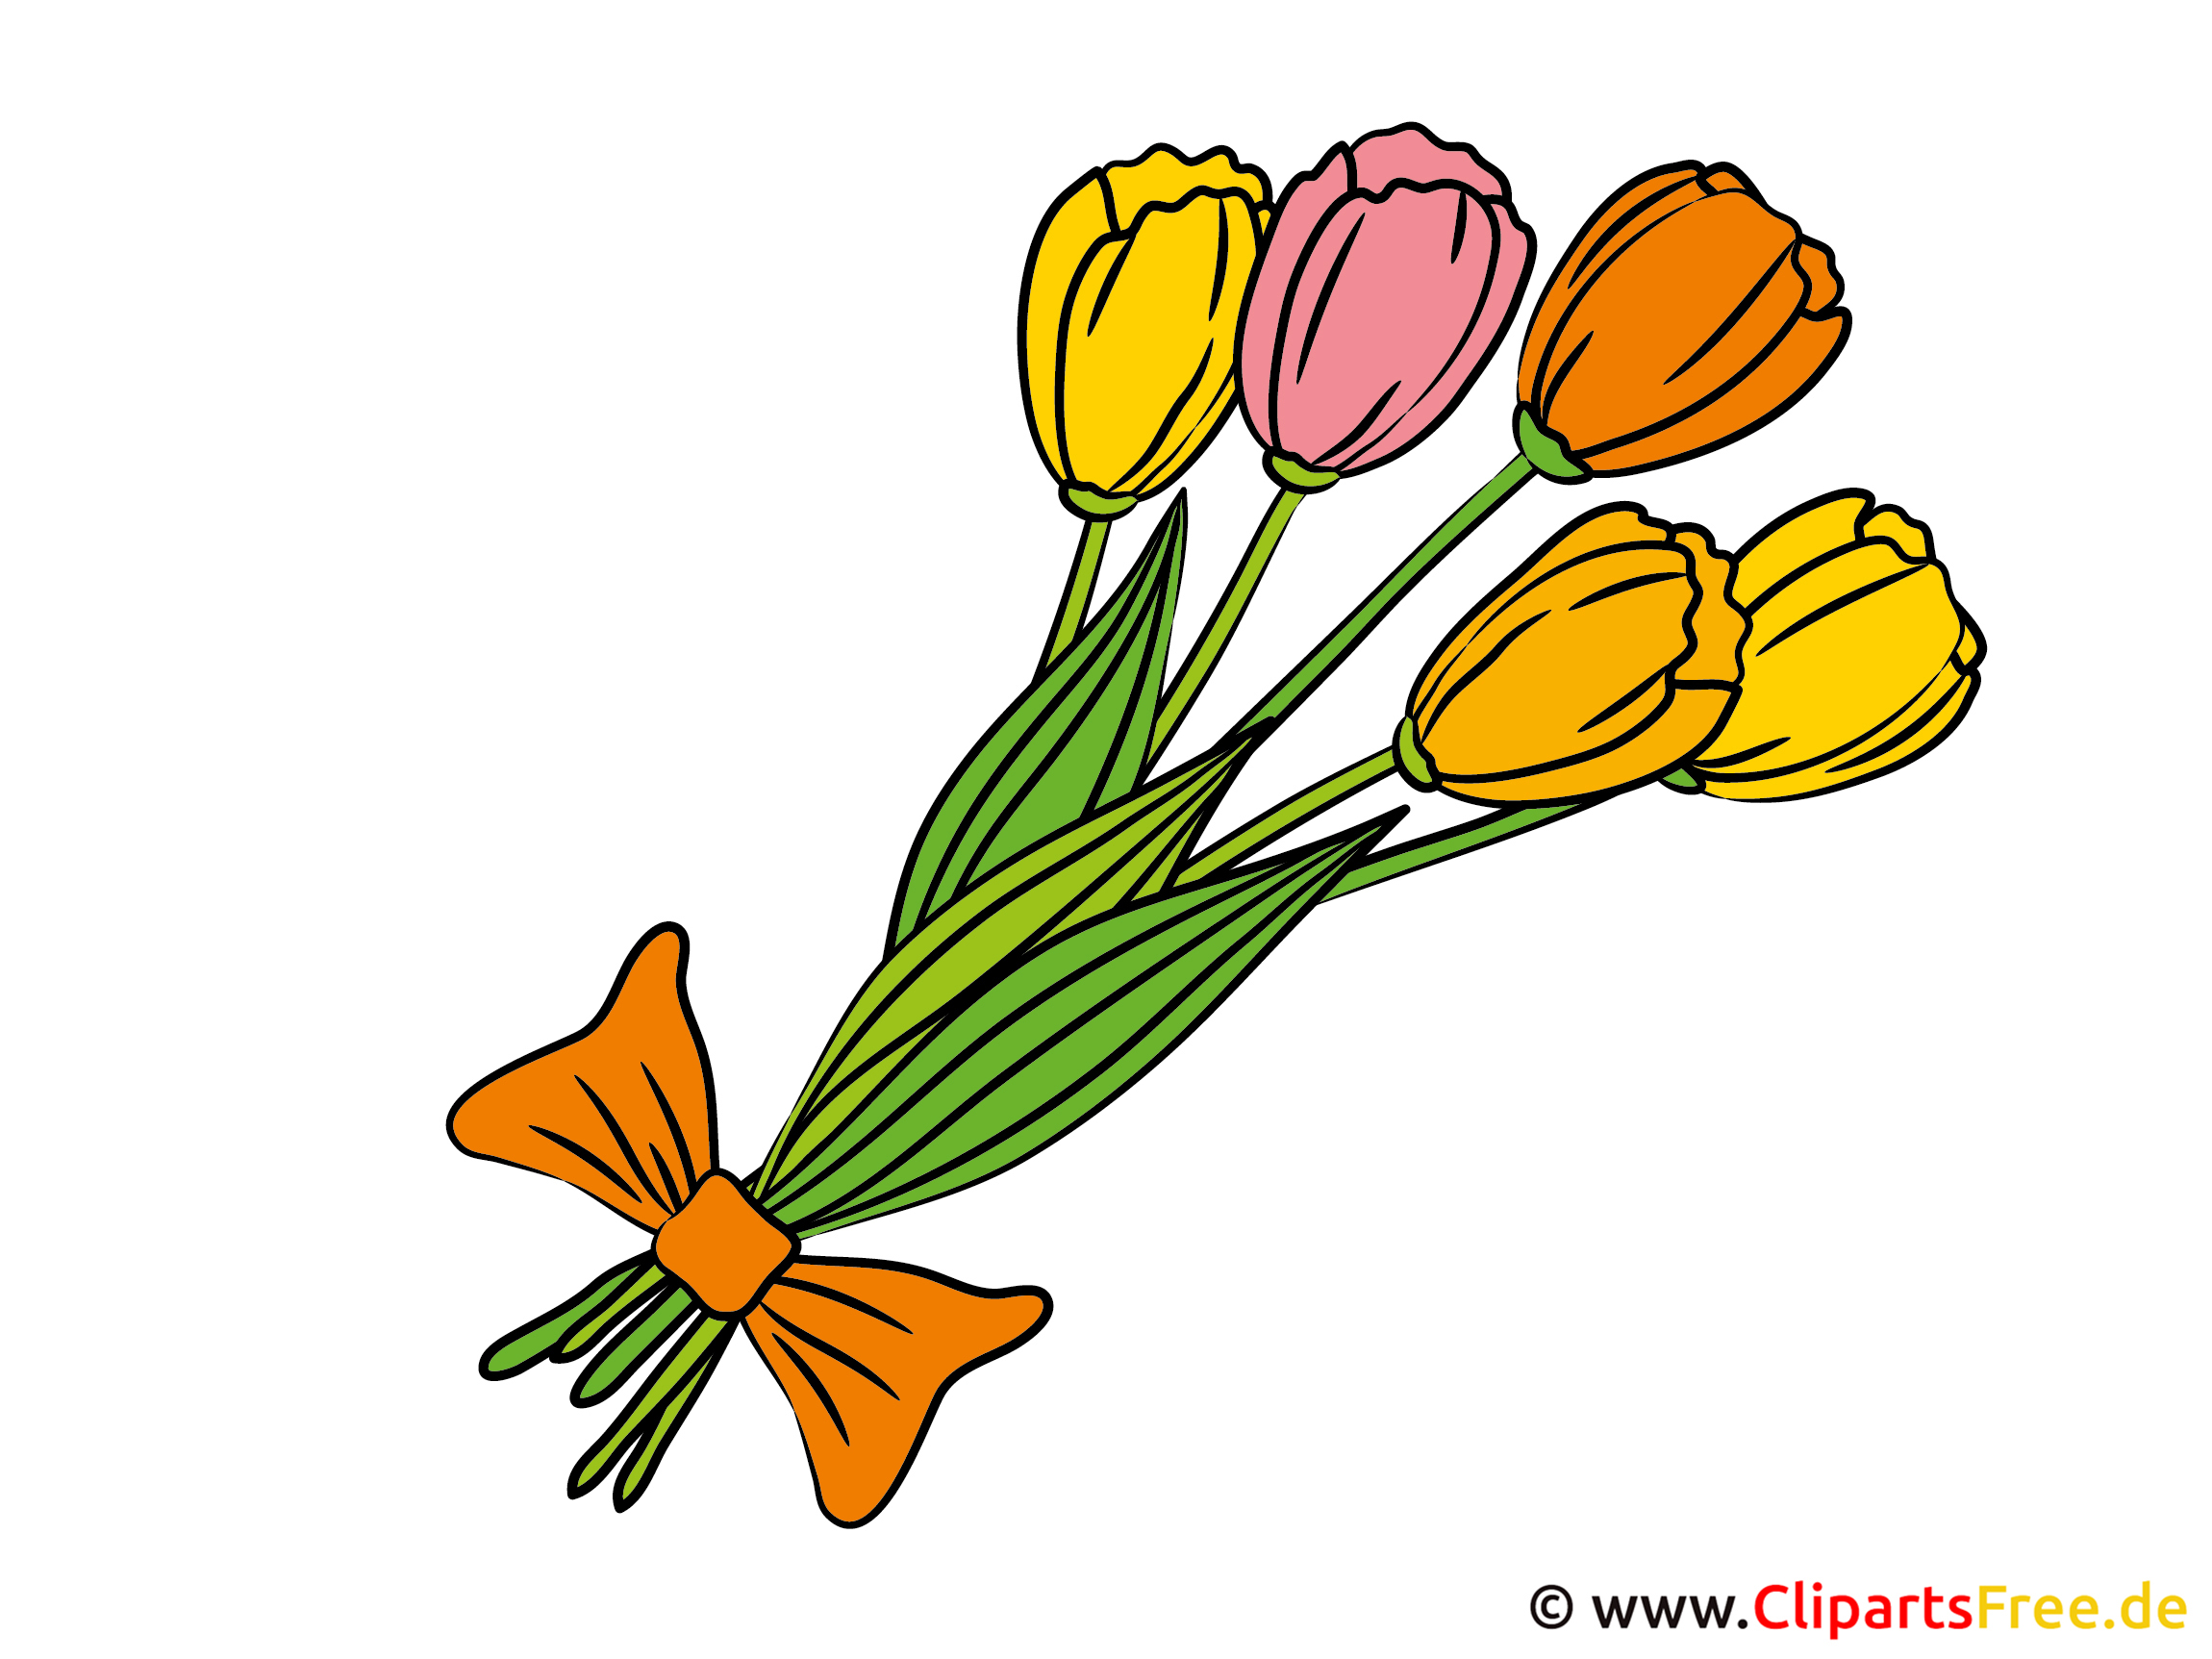 blumenstrauss mit tulpen bild clipart. Black Bedroom Furniture Sets. Home Design Ideas